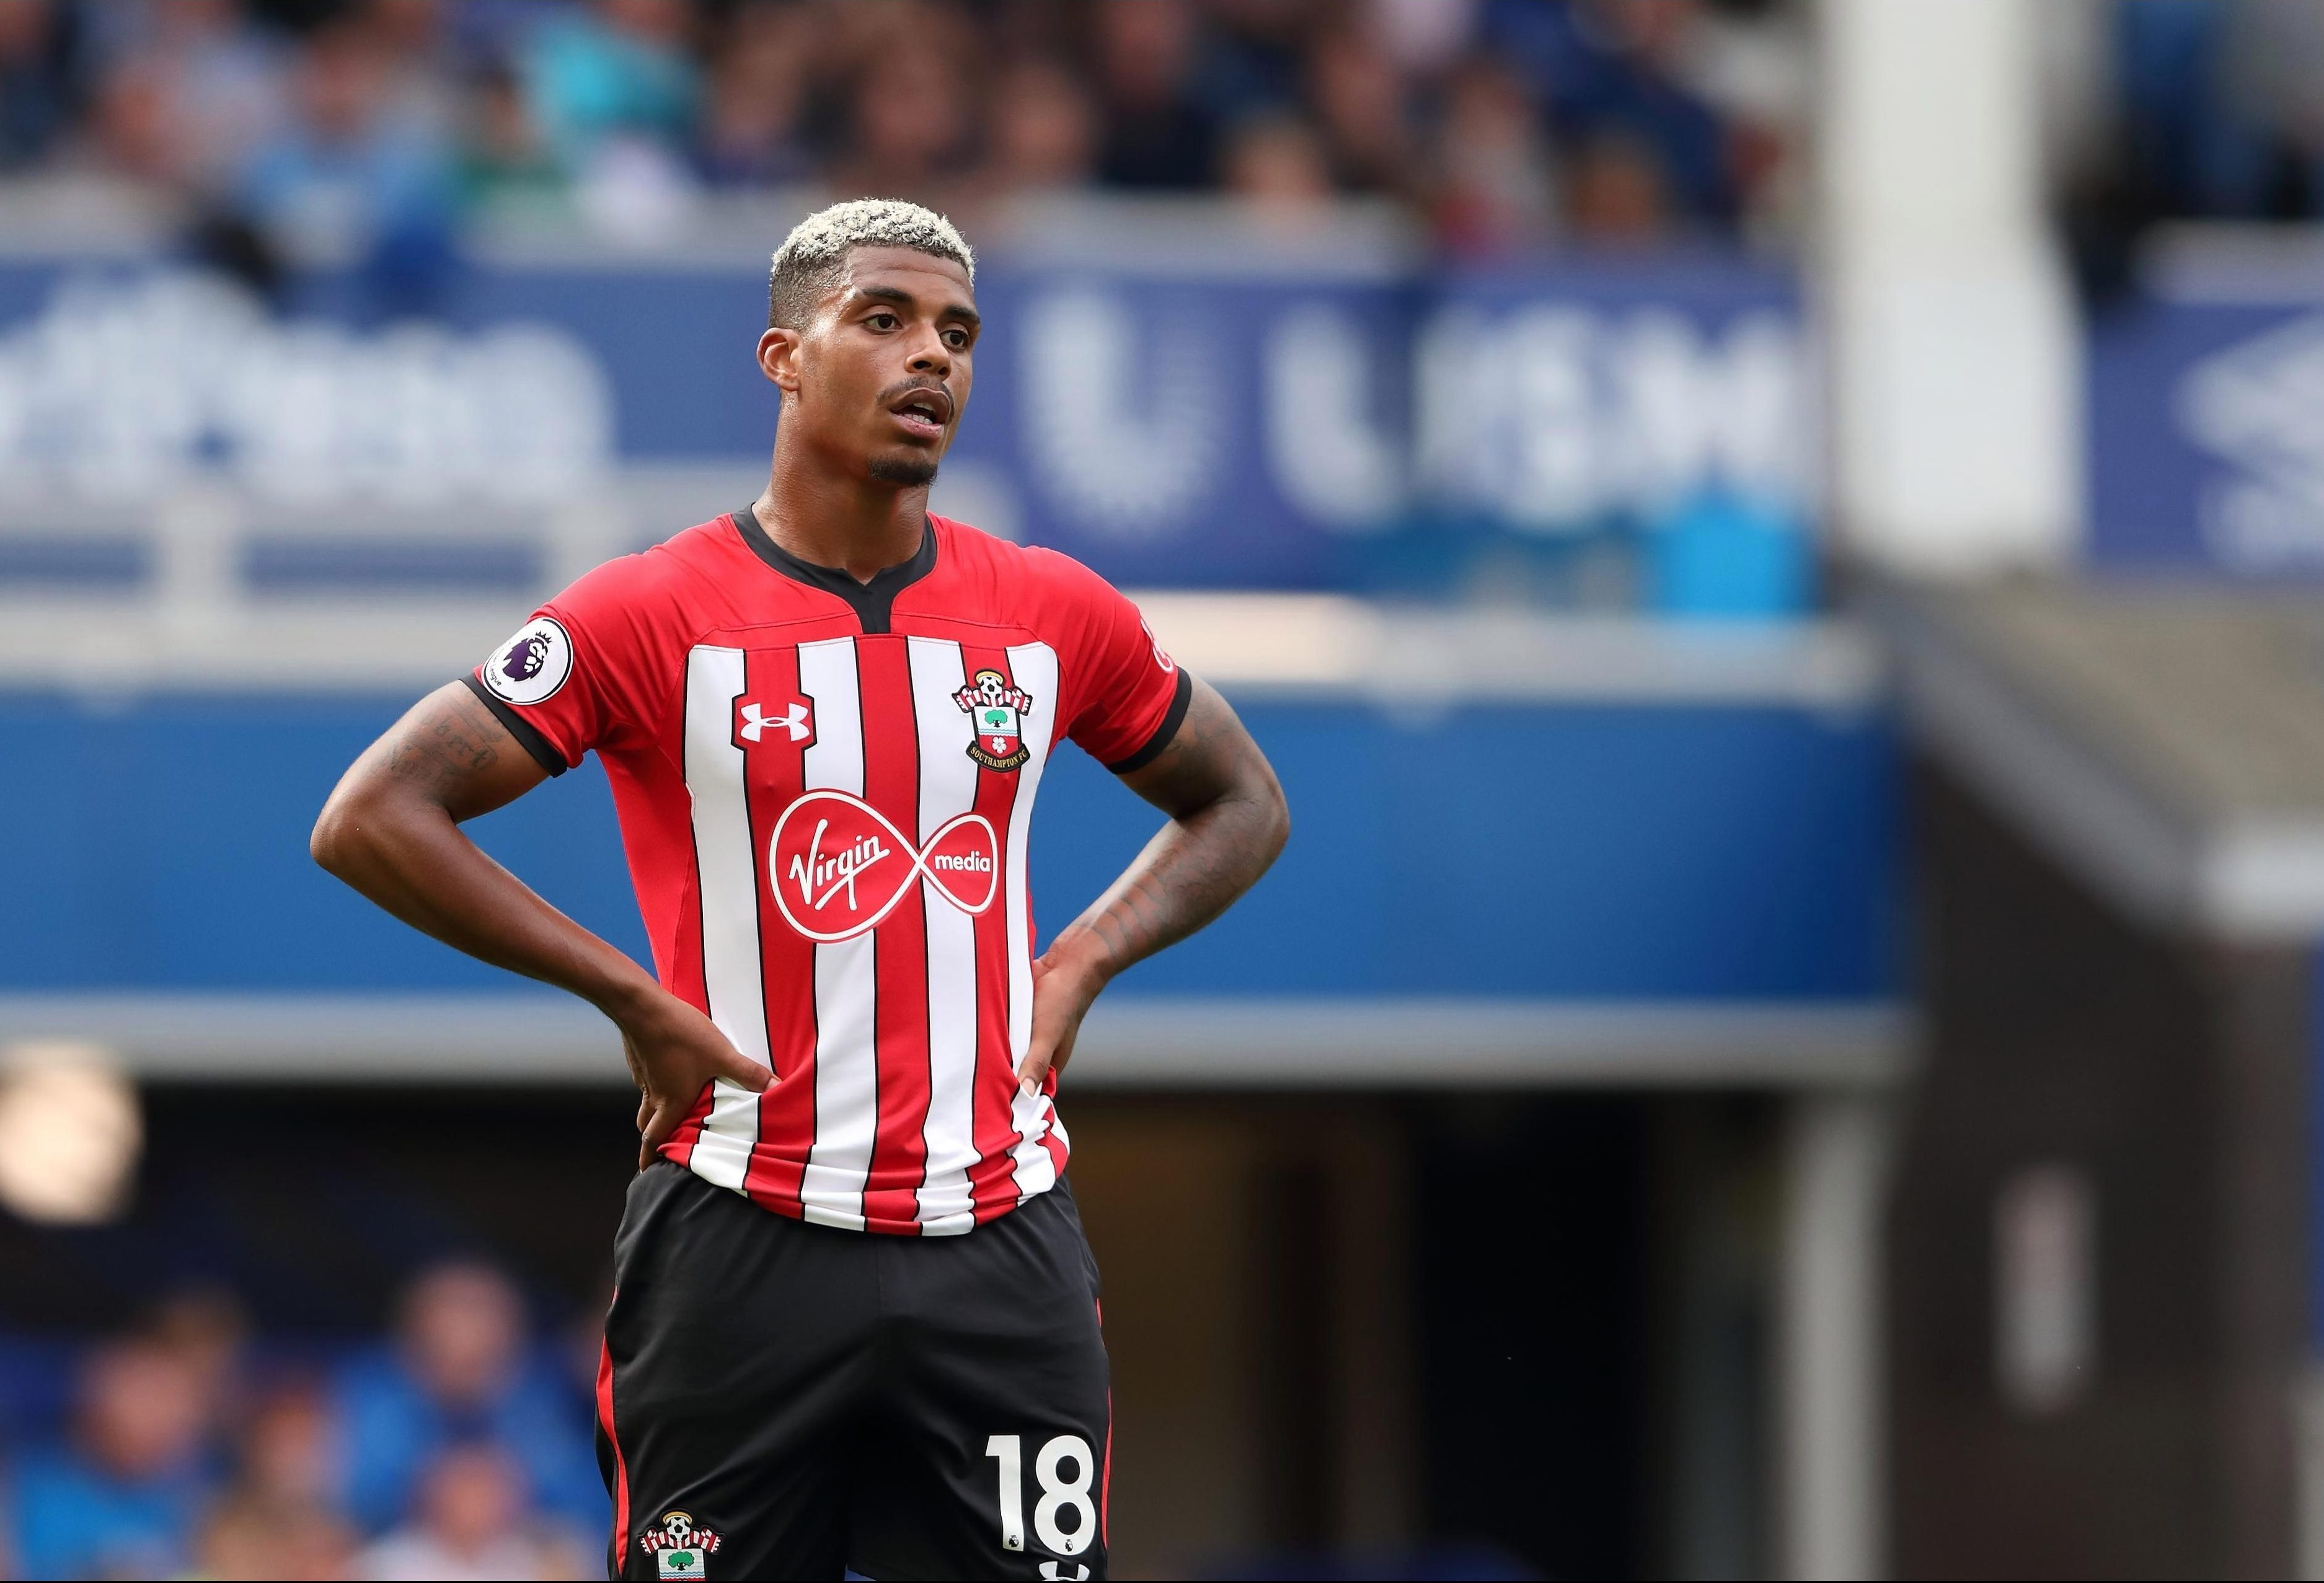 Mario Lemina during the Premier League match between Everton FC and Southampton FC at Goodison Park on August 18, 2018